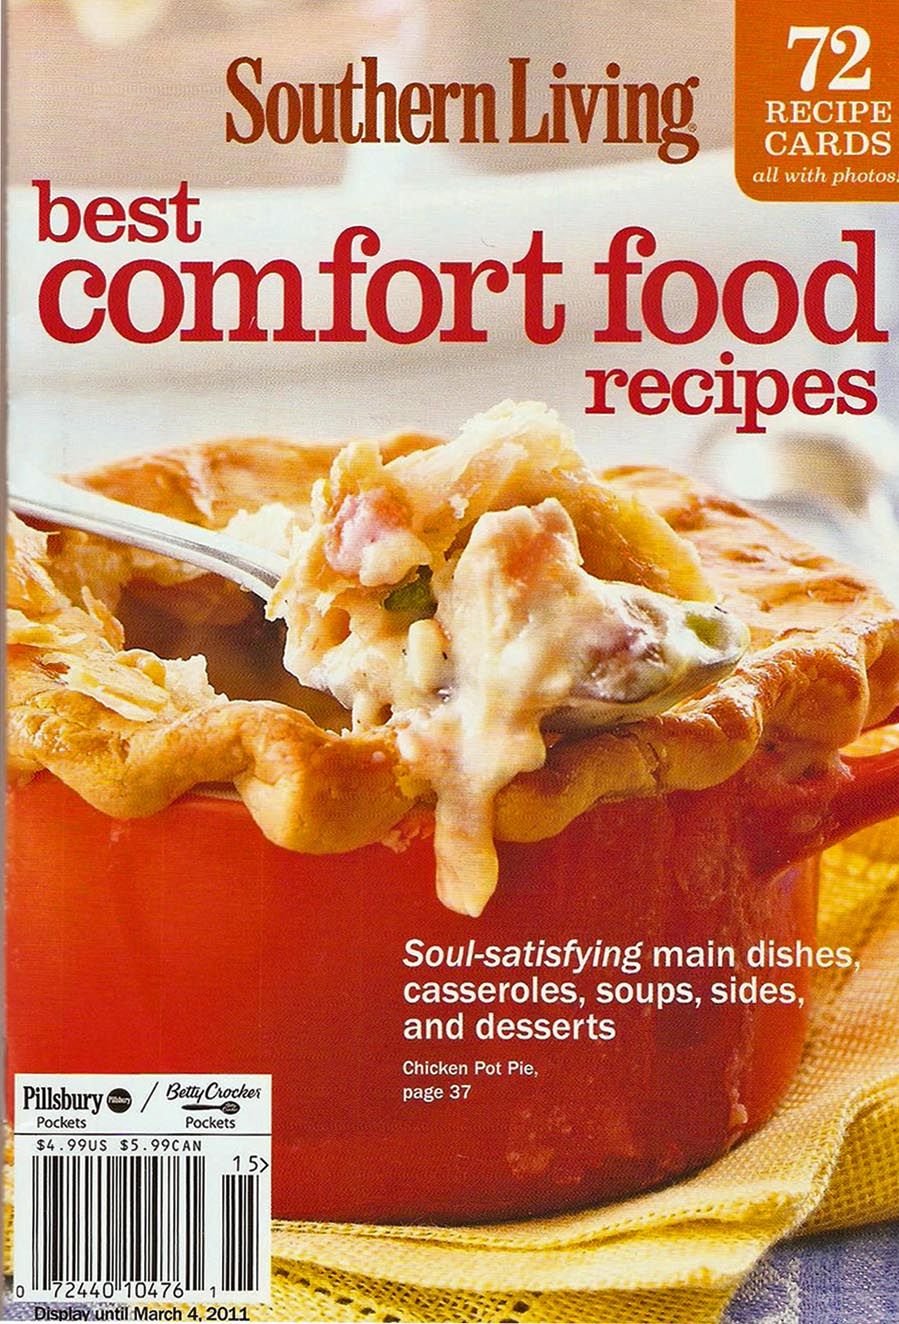 The iowa housewife southern living best comfort food recipes southern living best comfort food recipes forumfinder Choice Image